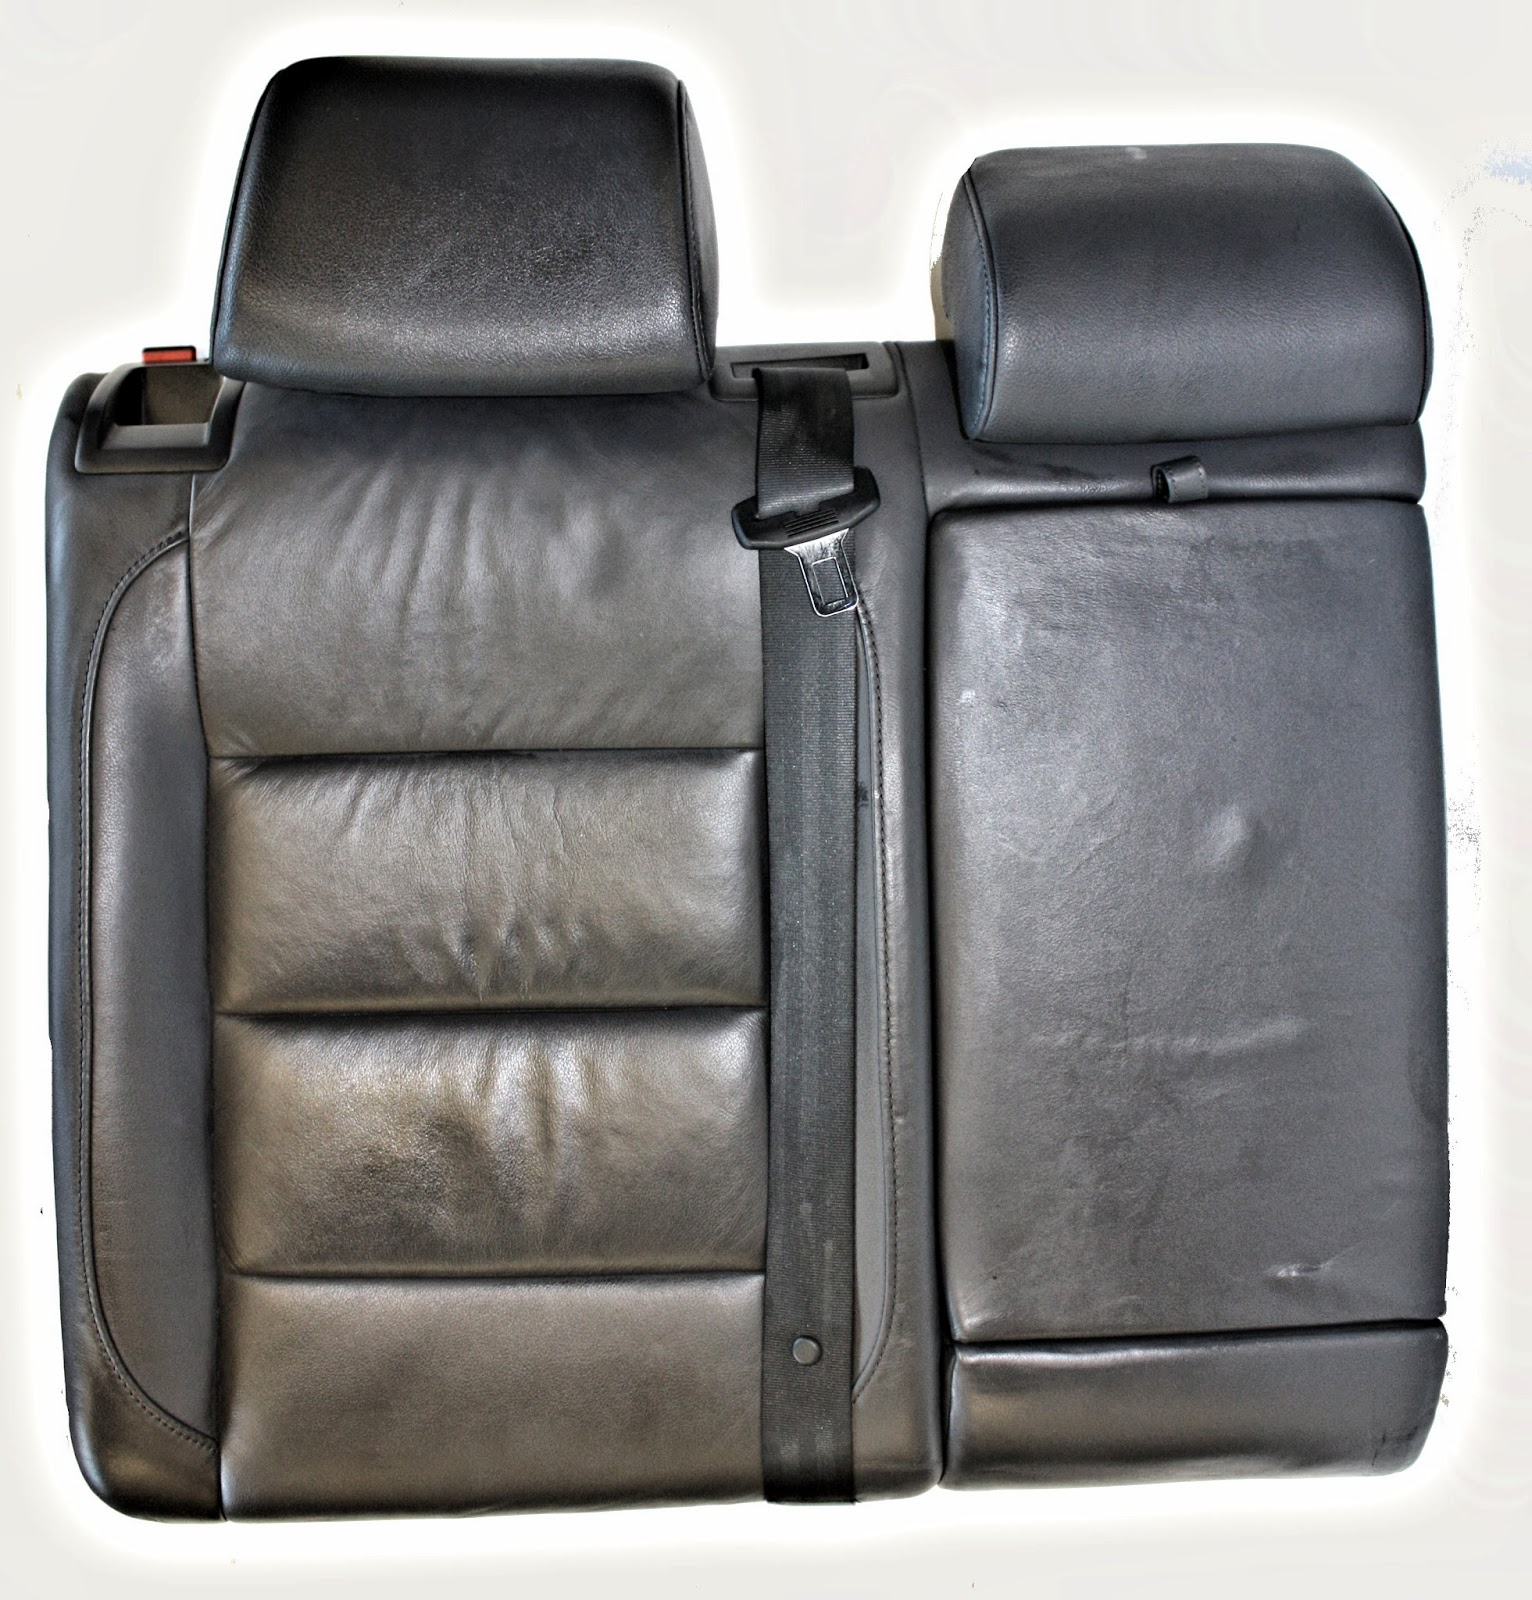 Mostly German Auto Recycling 05 10 Vw Jetta Mk5 Leather Seats